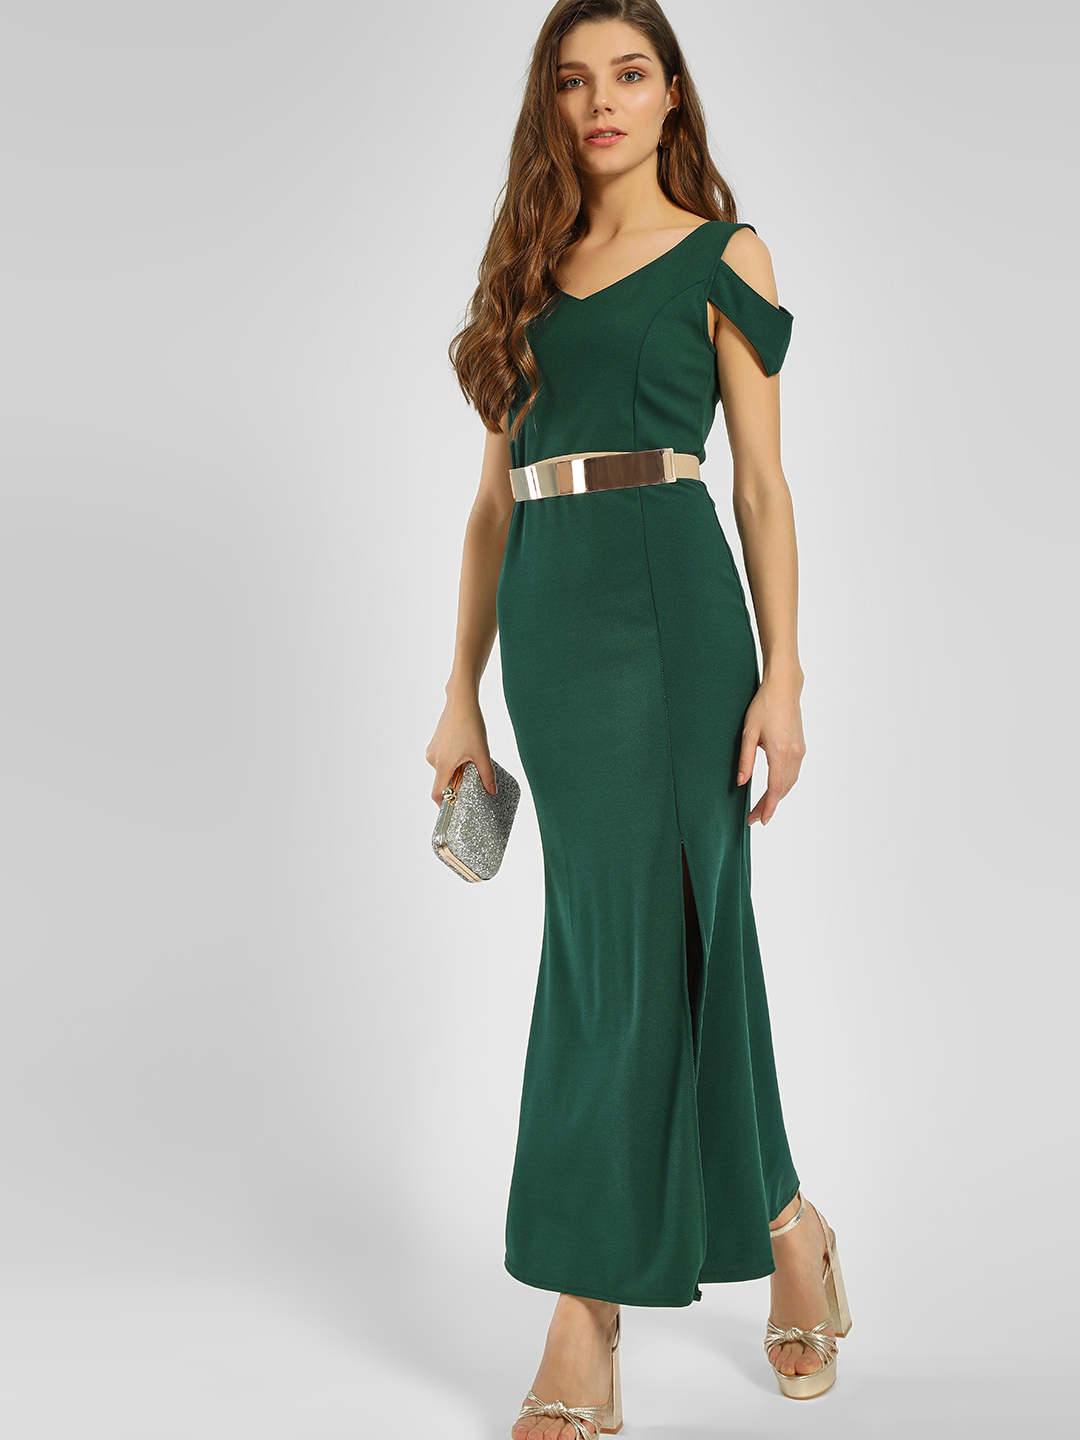 Origami Lily Green High Slit Maxi Dress 1